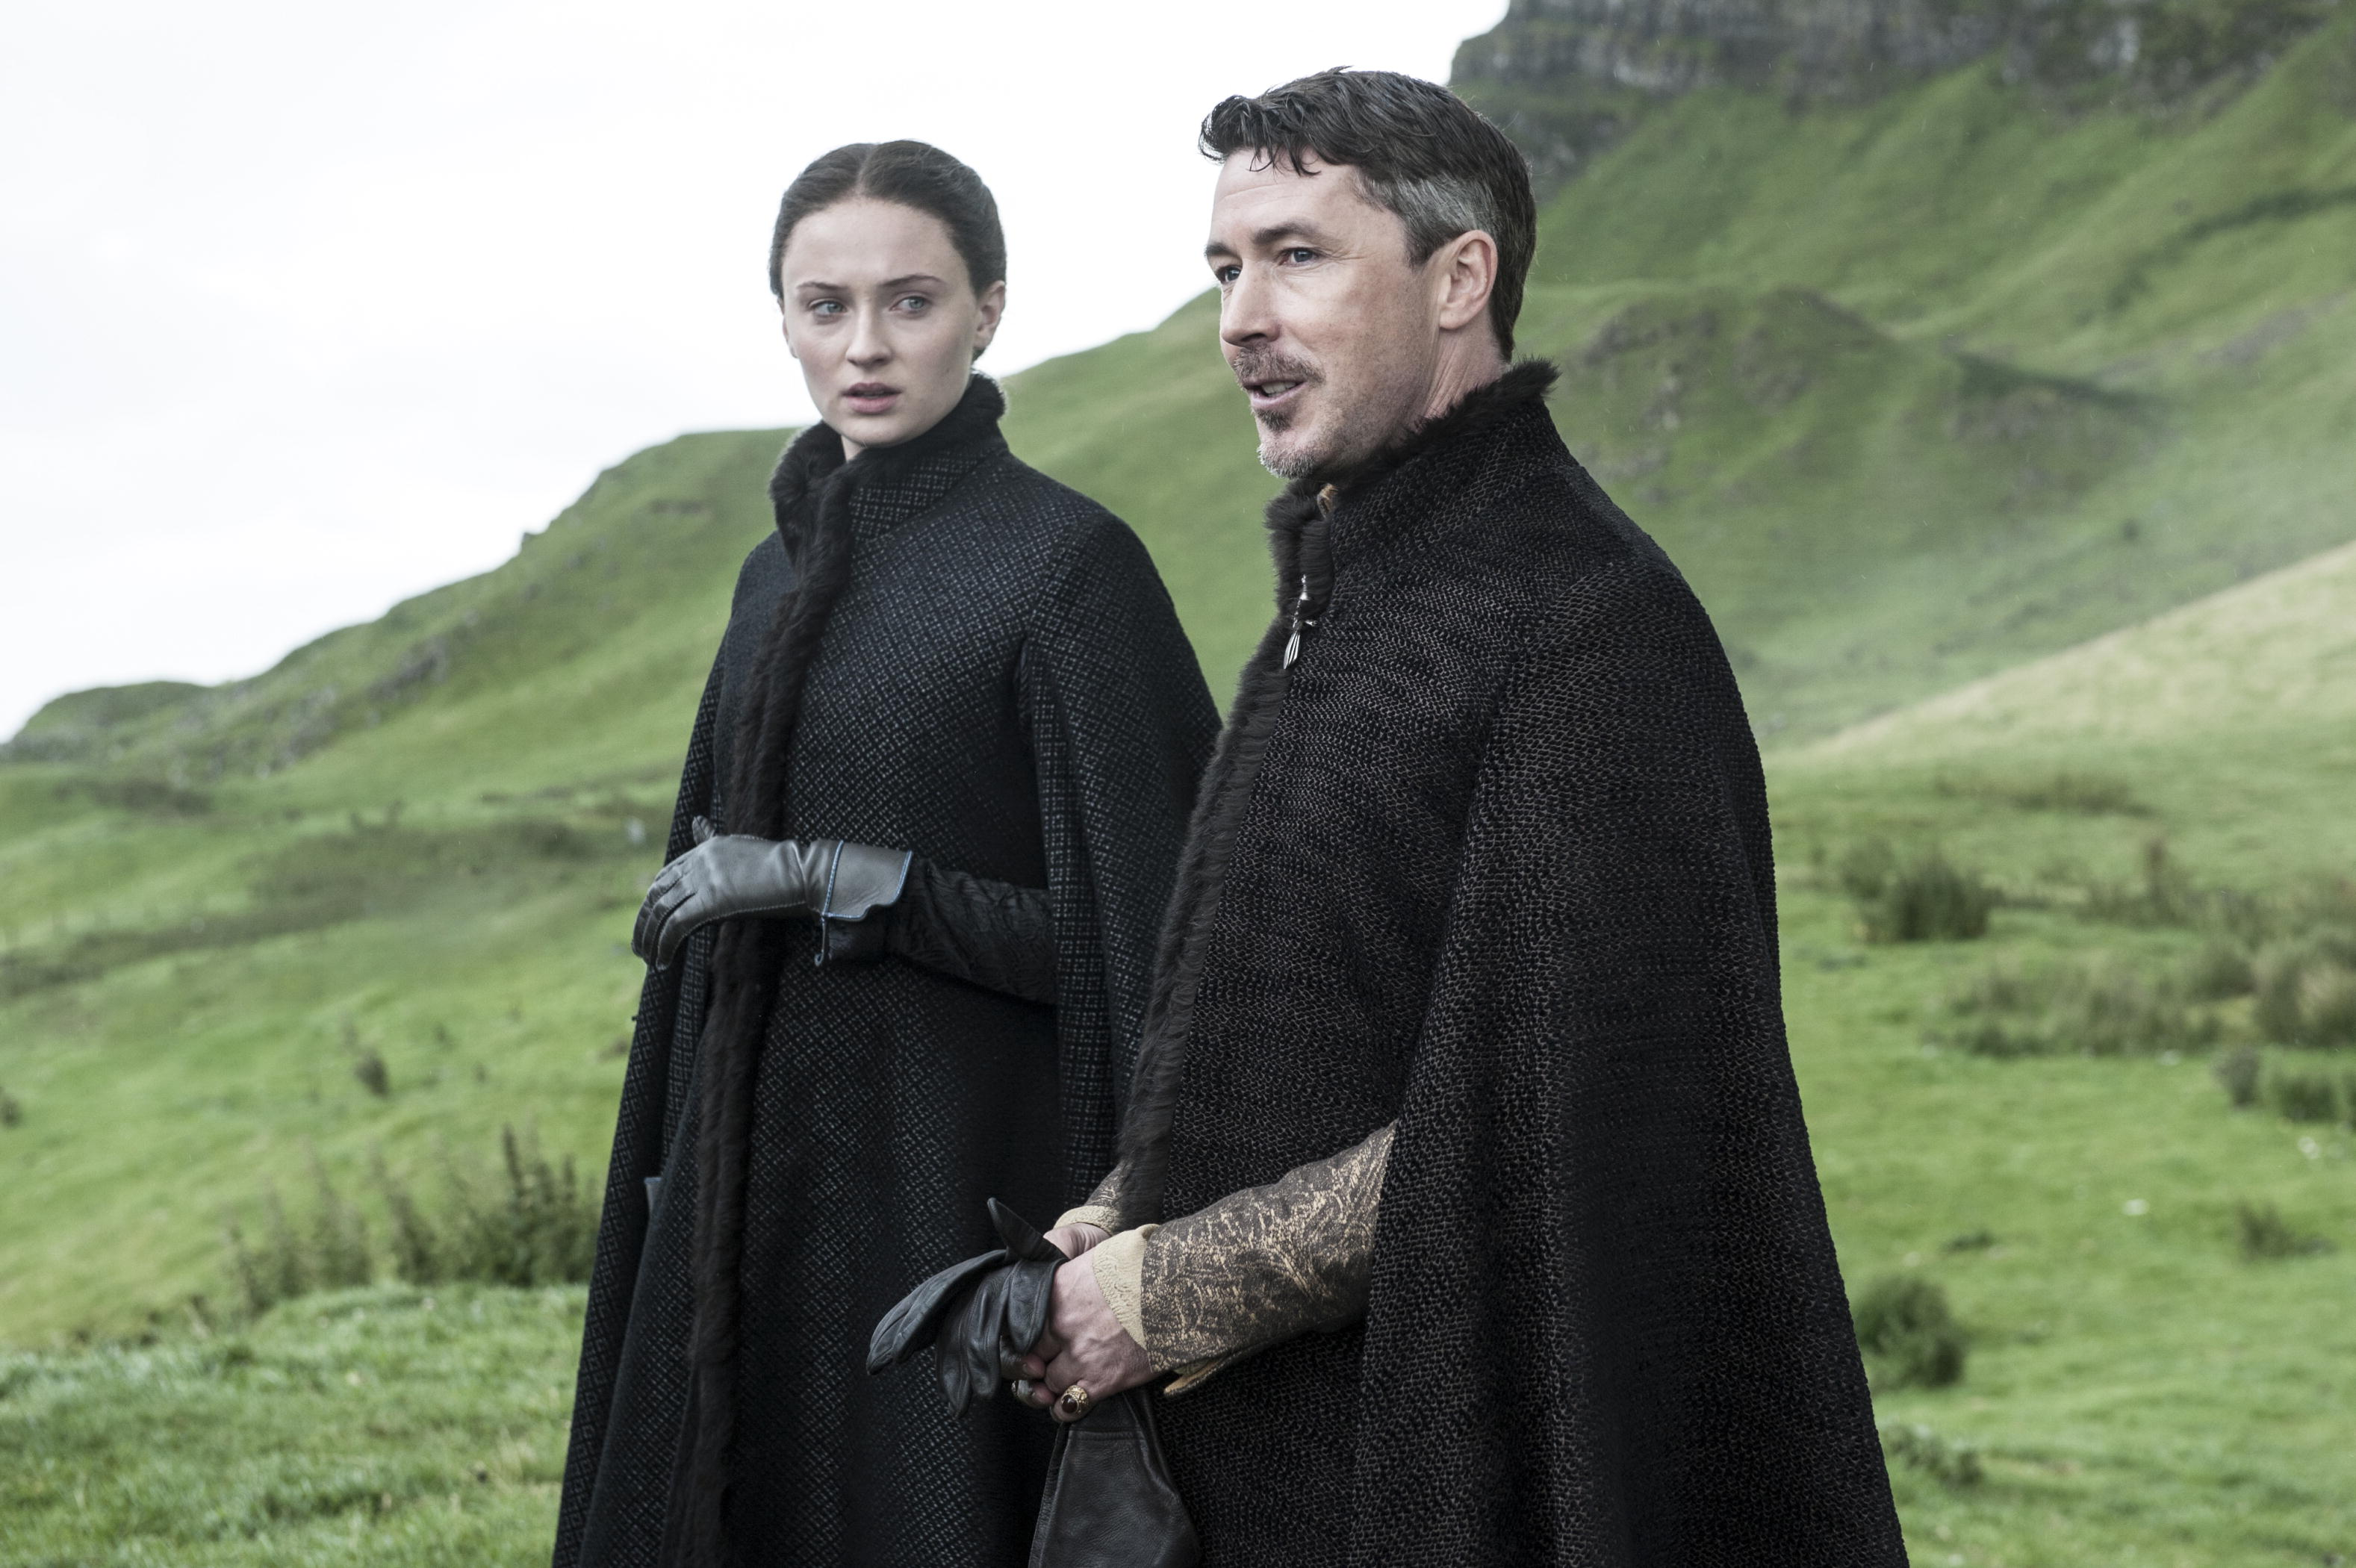 reddit s most prolific game of thrones theorist shares his game of thrones season 5 official images